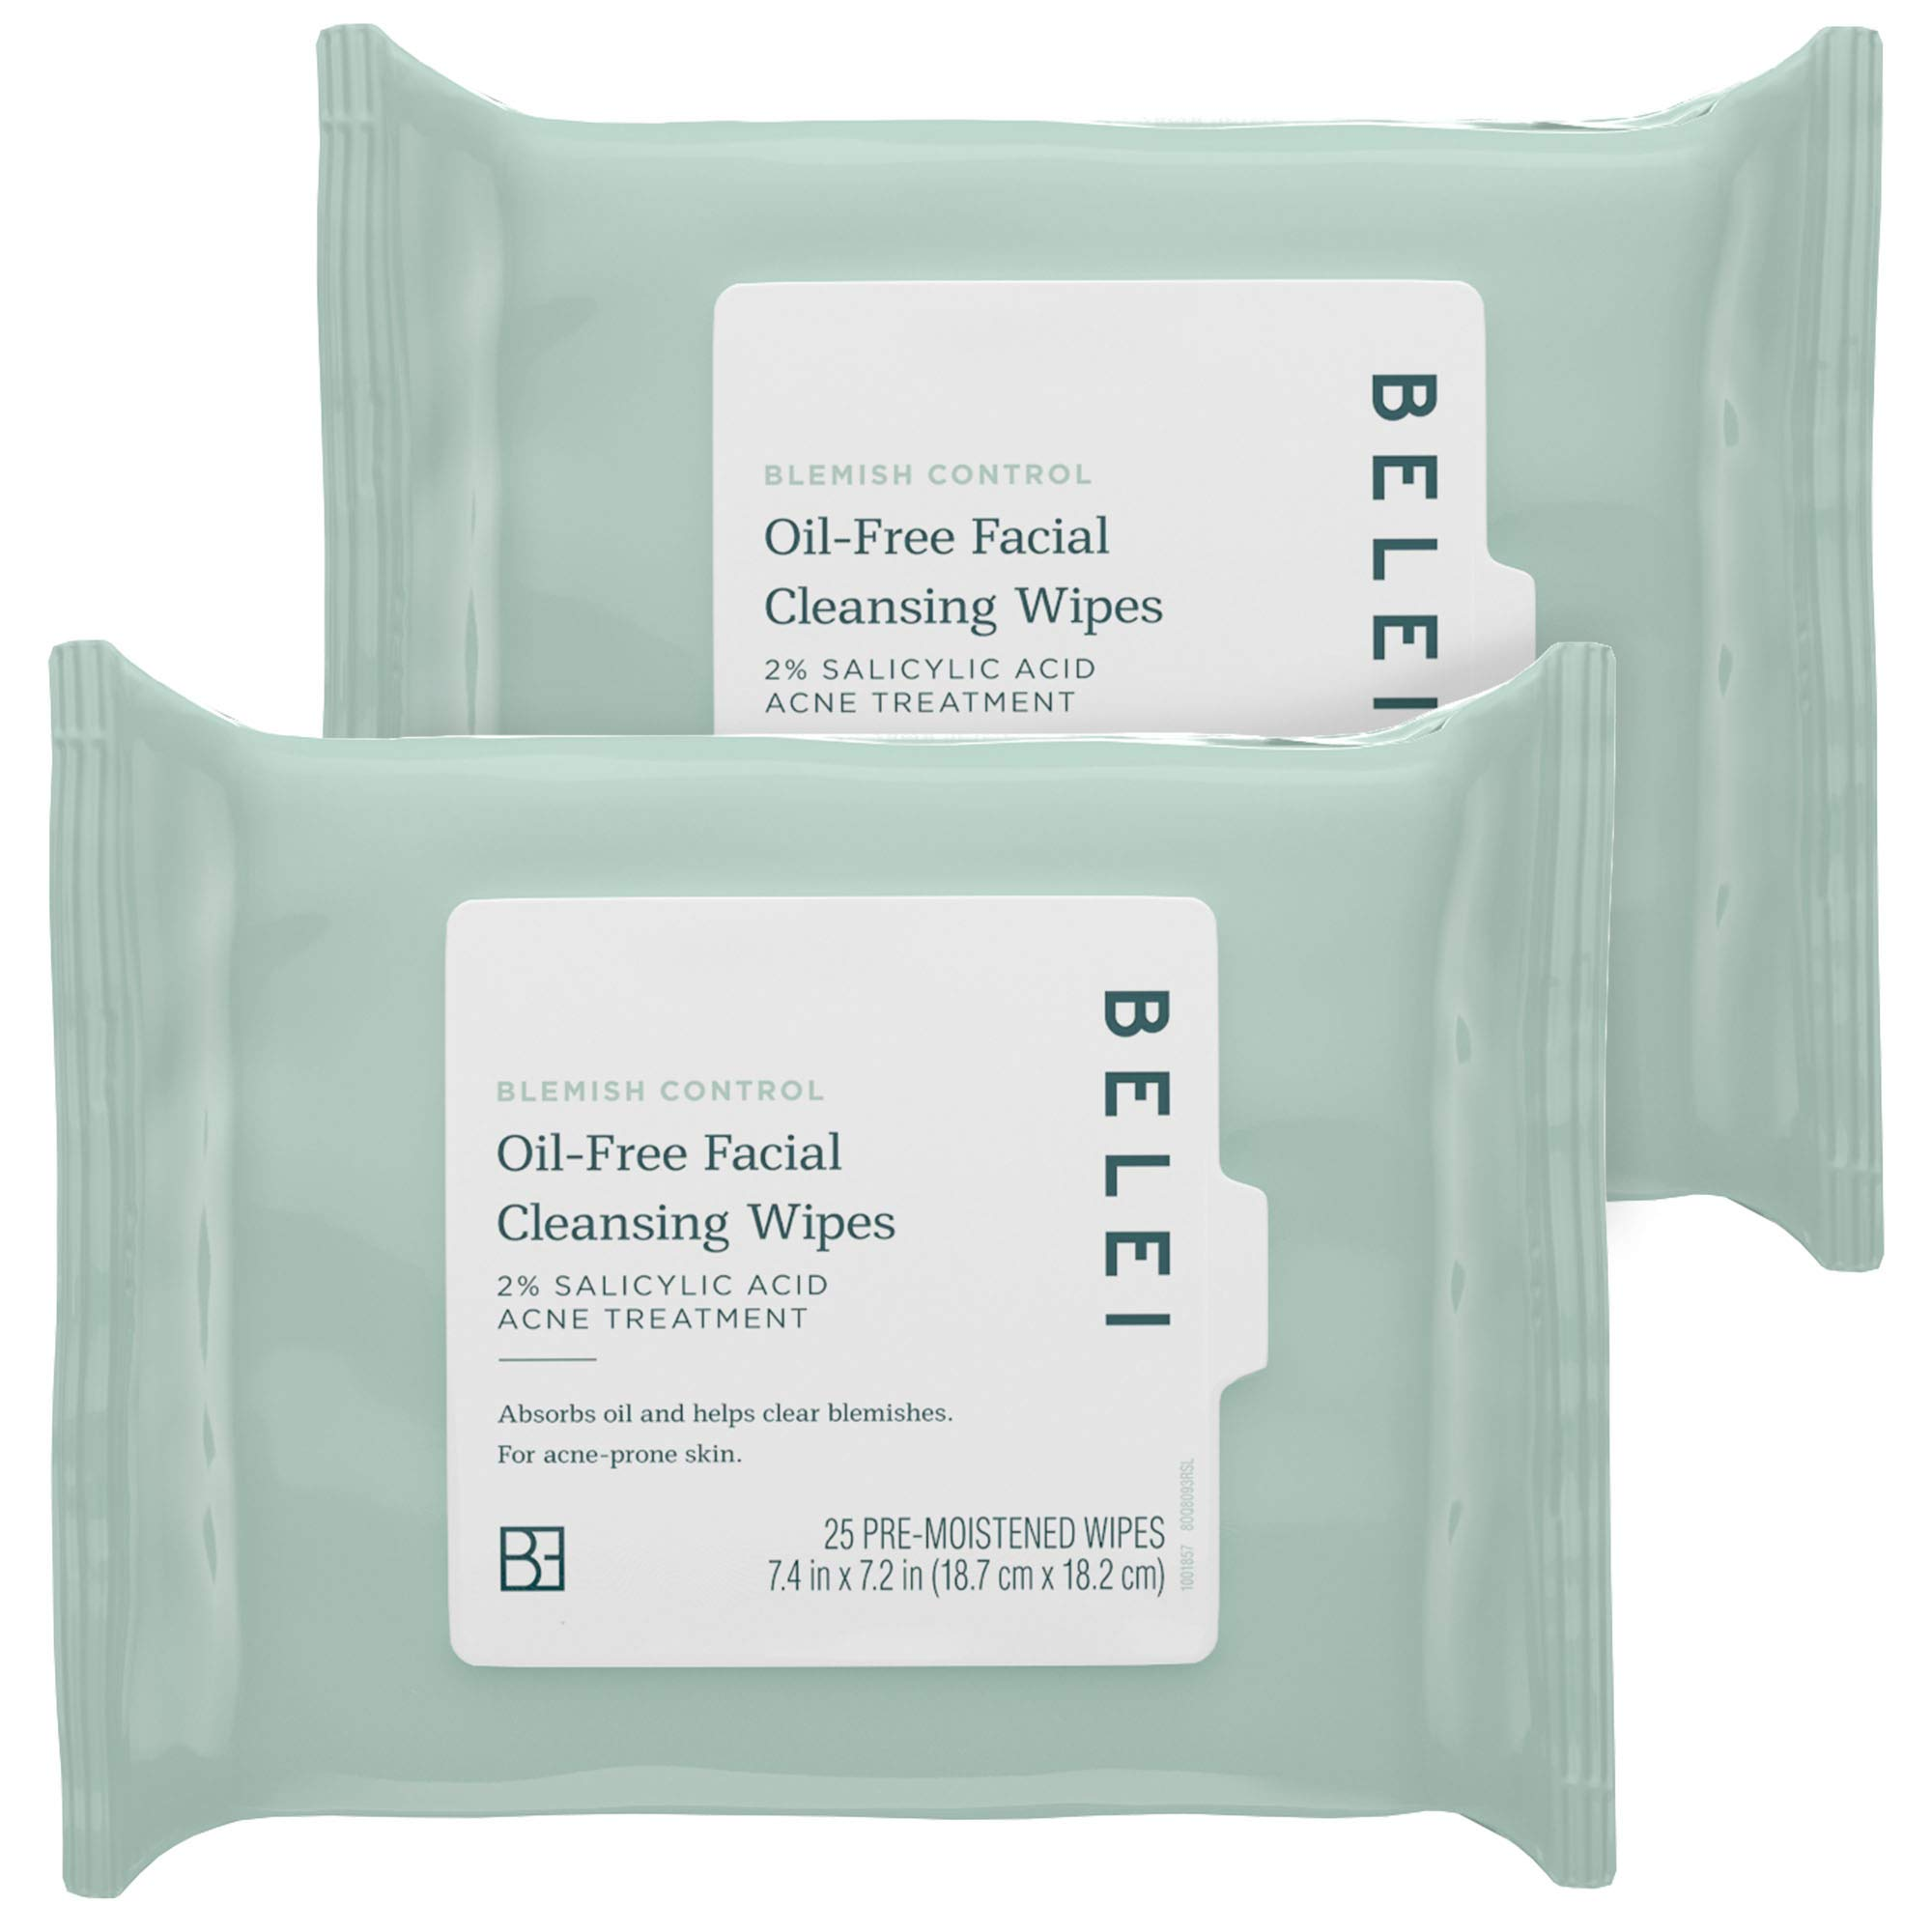 Belei by Amazon: Oil-Free Blemish Control Facial Cleansing Wipes, 2% Salicylic Acid Acne Treatment, Dermatologist Test, 25 Count (Pack of 2)